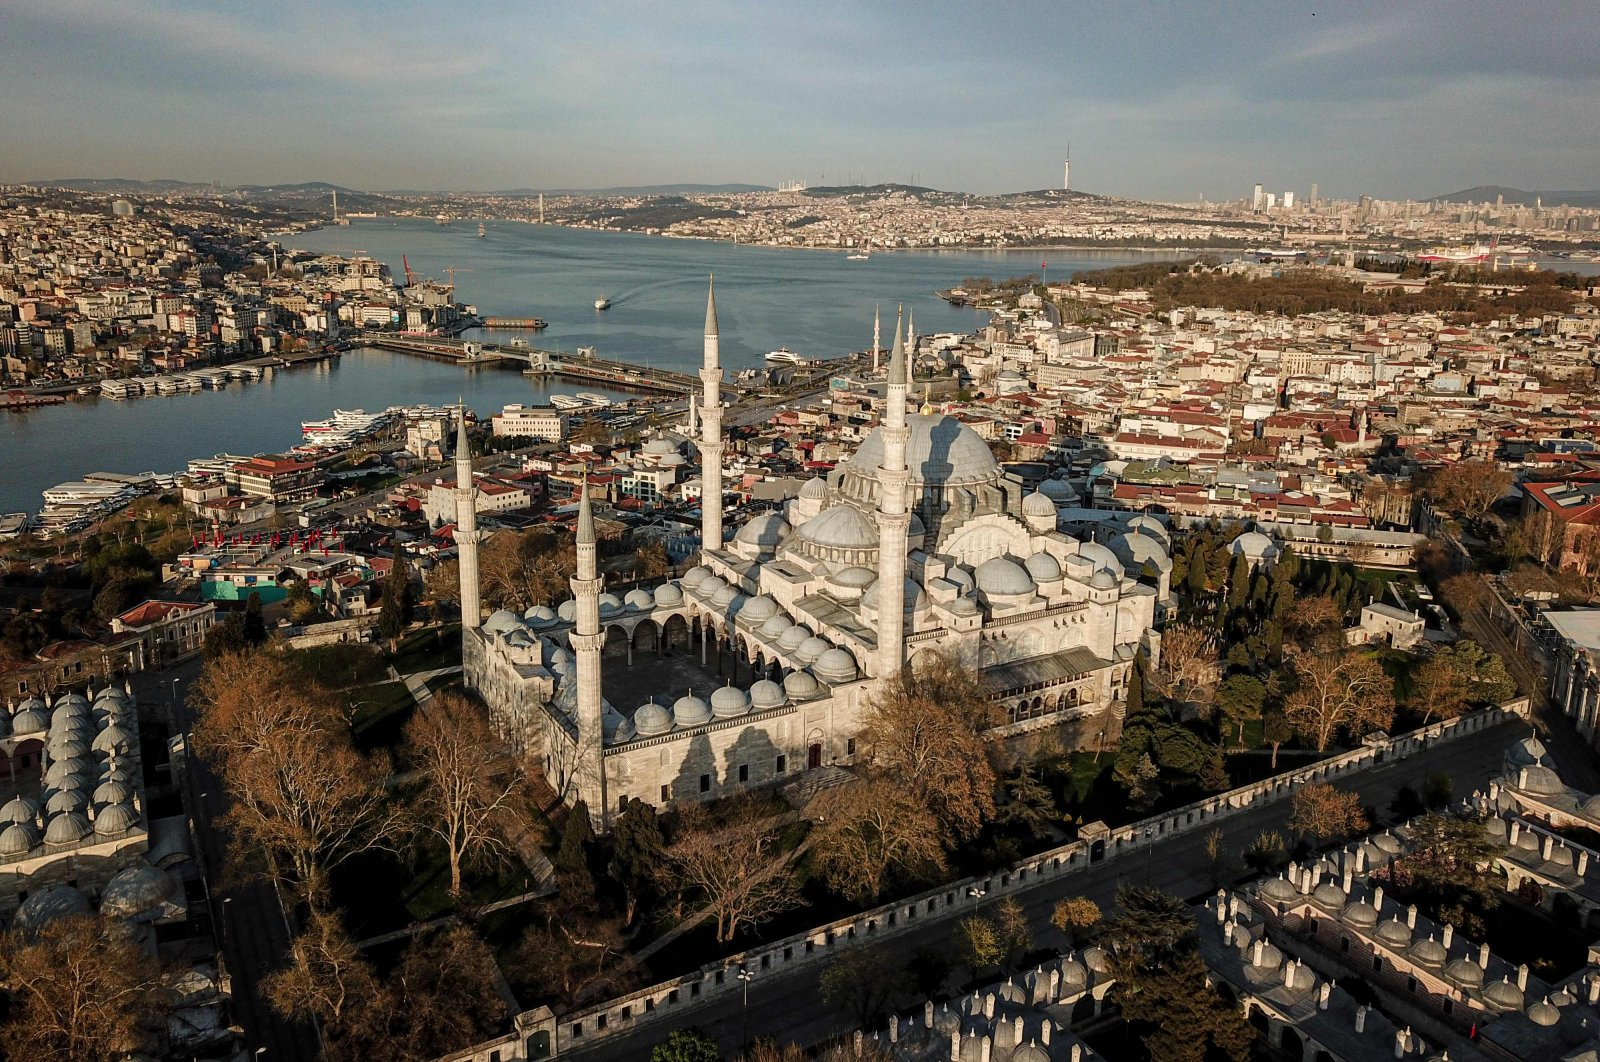 An aerial photo shows a general view of the Süleymaniye Mosque and the Bosporus, Istanbul, Turkey, April 19, 2020. (AFP Photo)